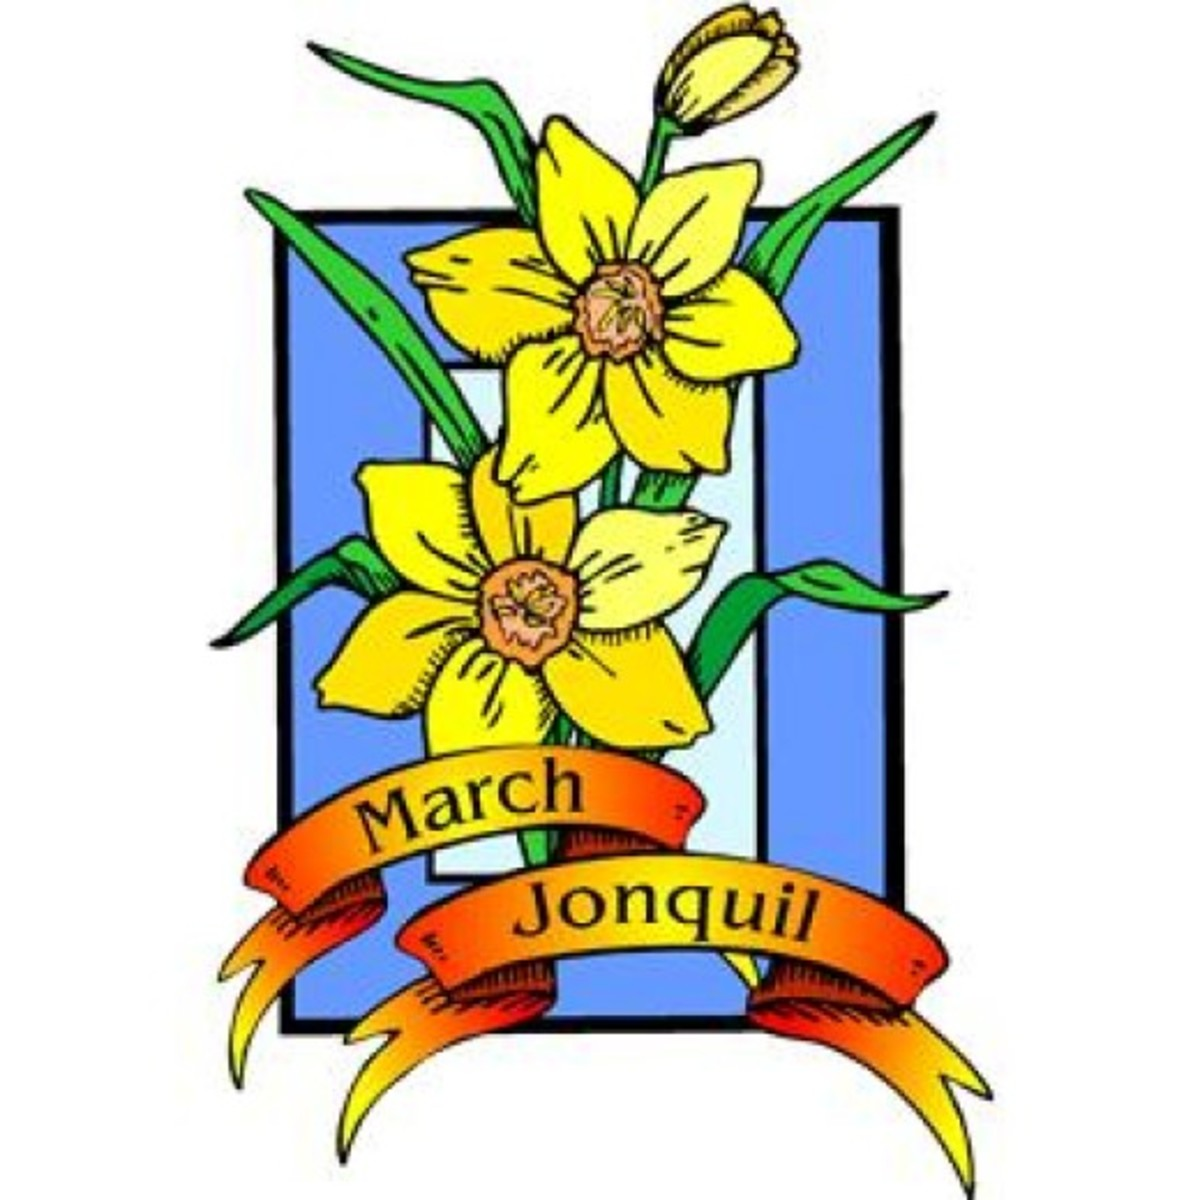 March Jonquil